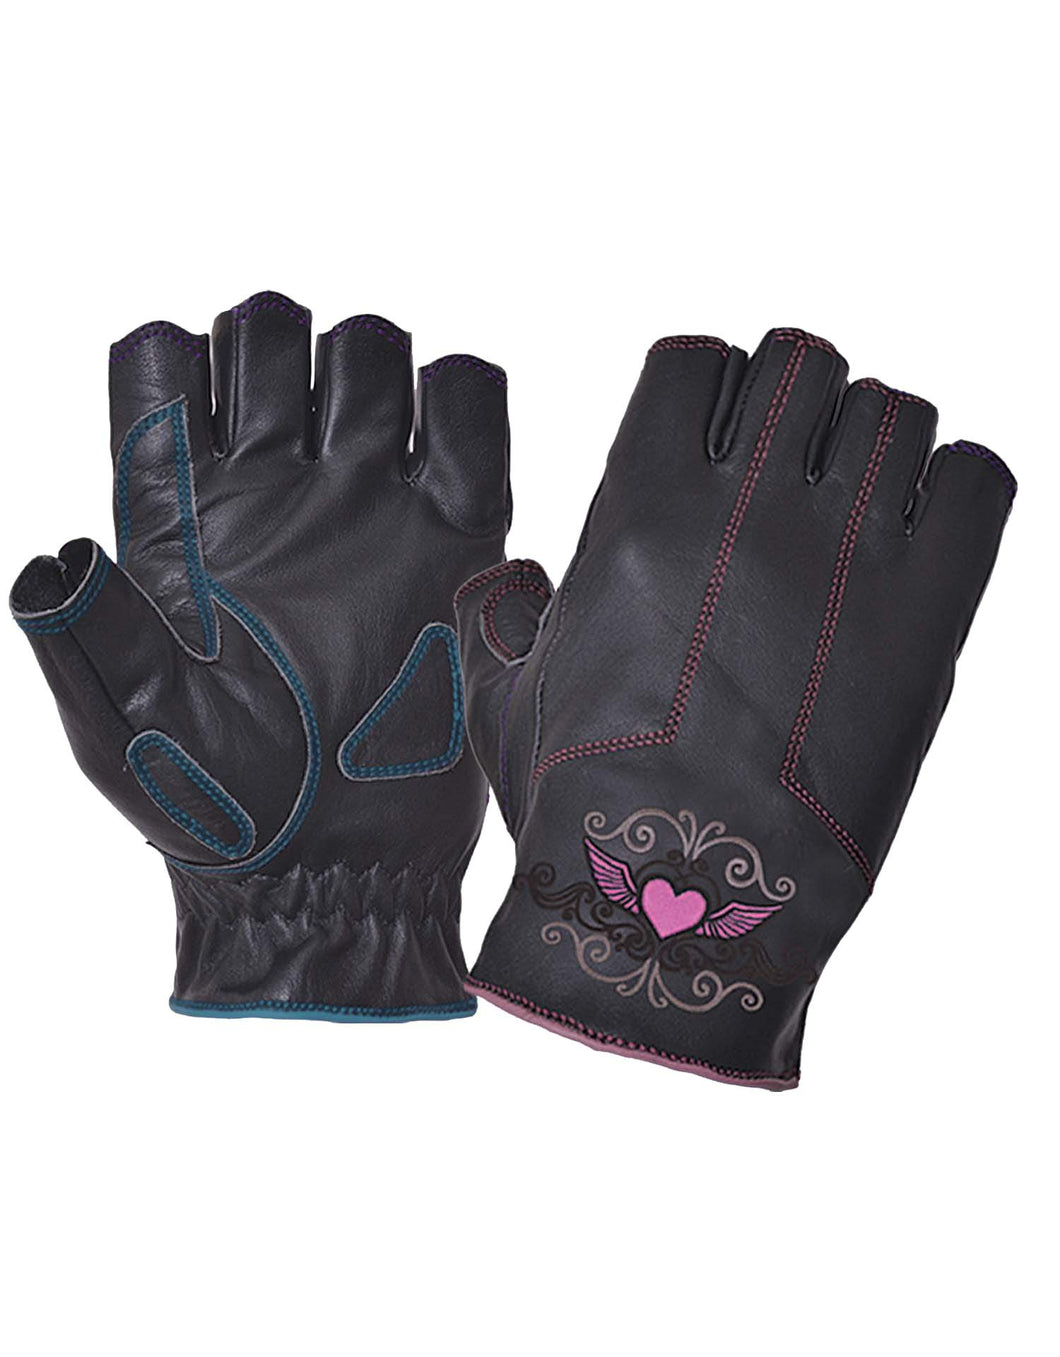 UNIK Ladies Fingerless Gloves